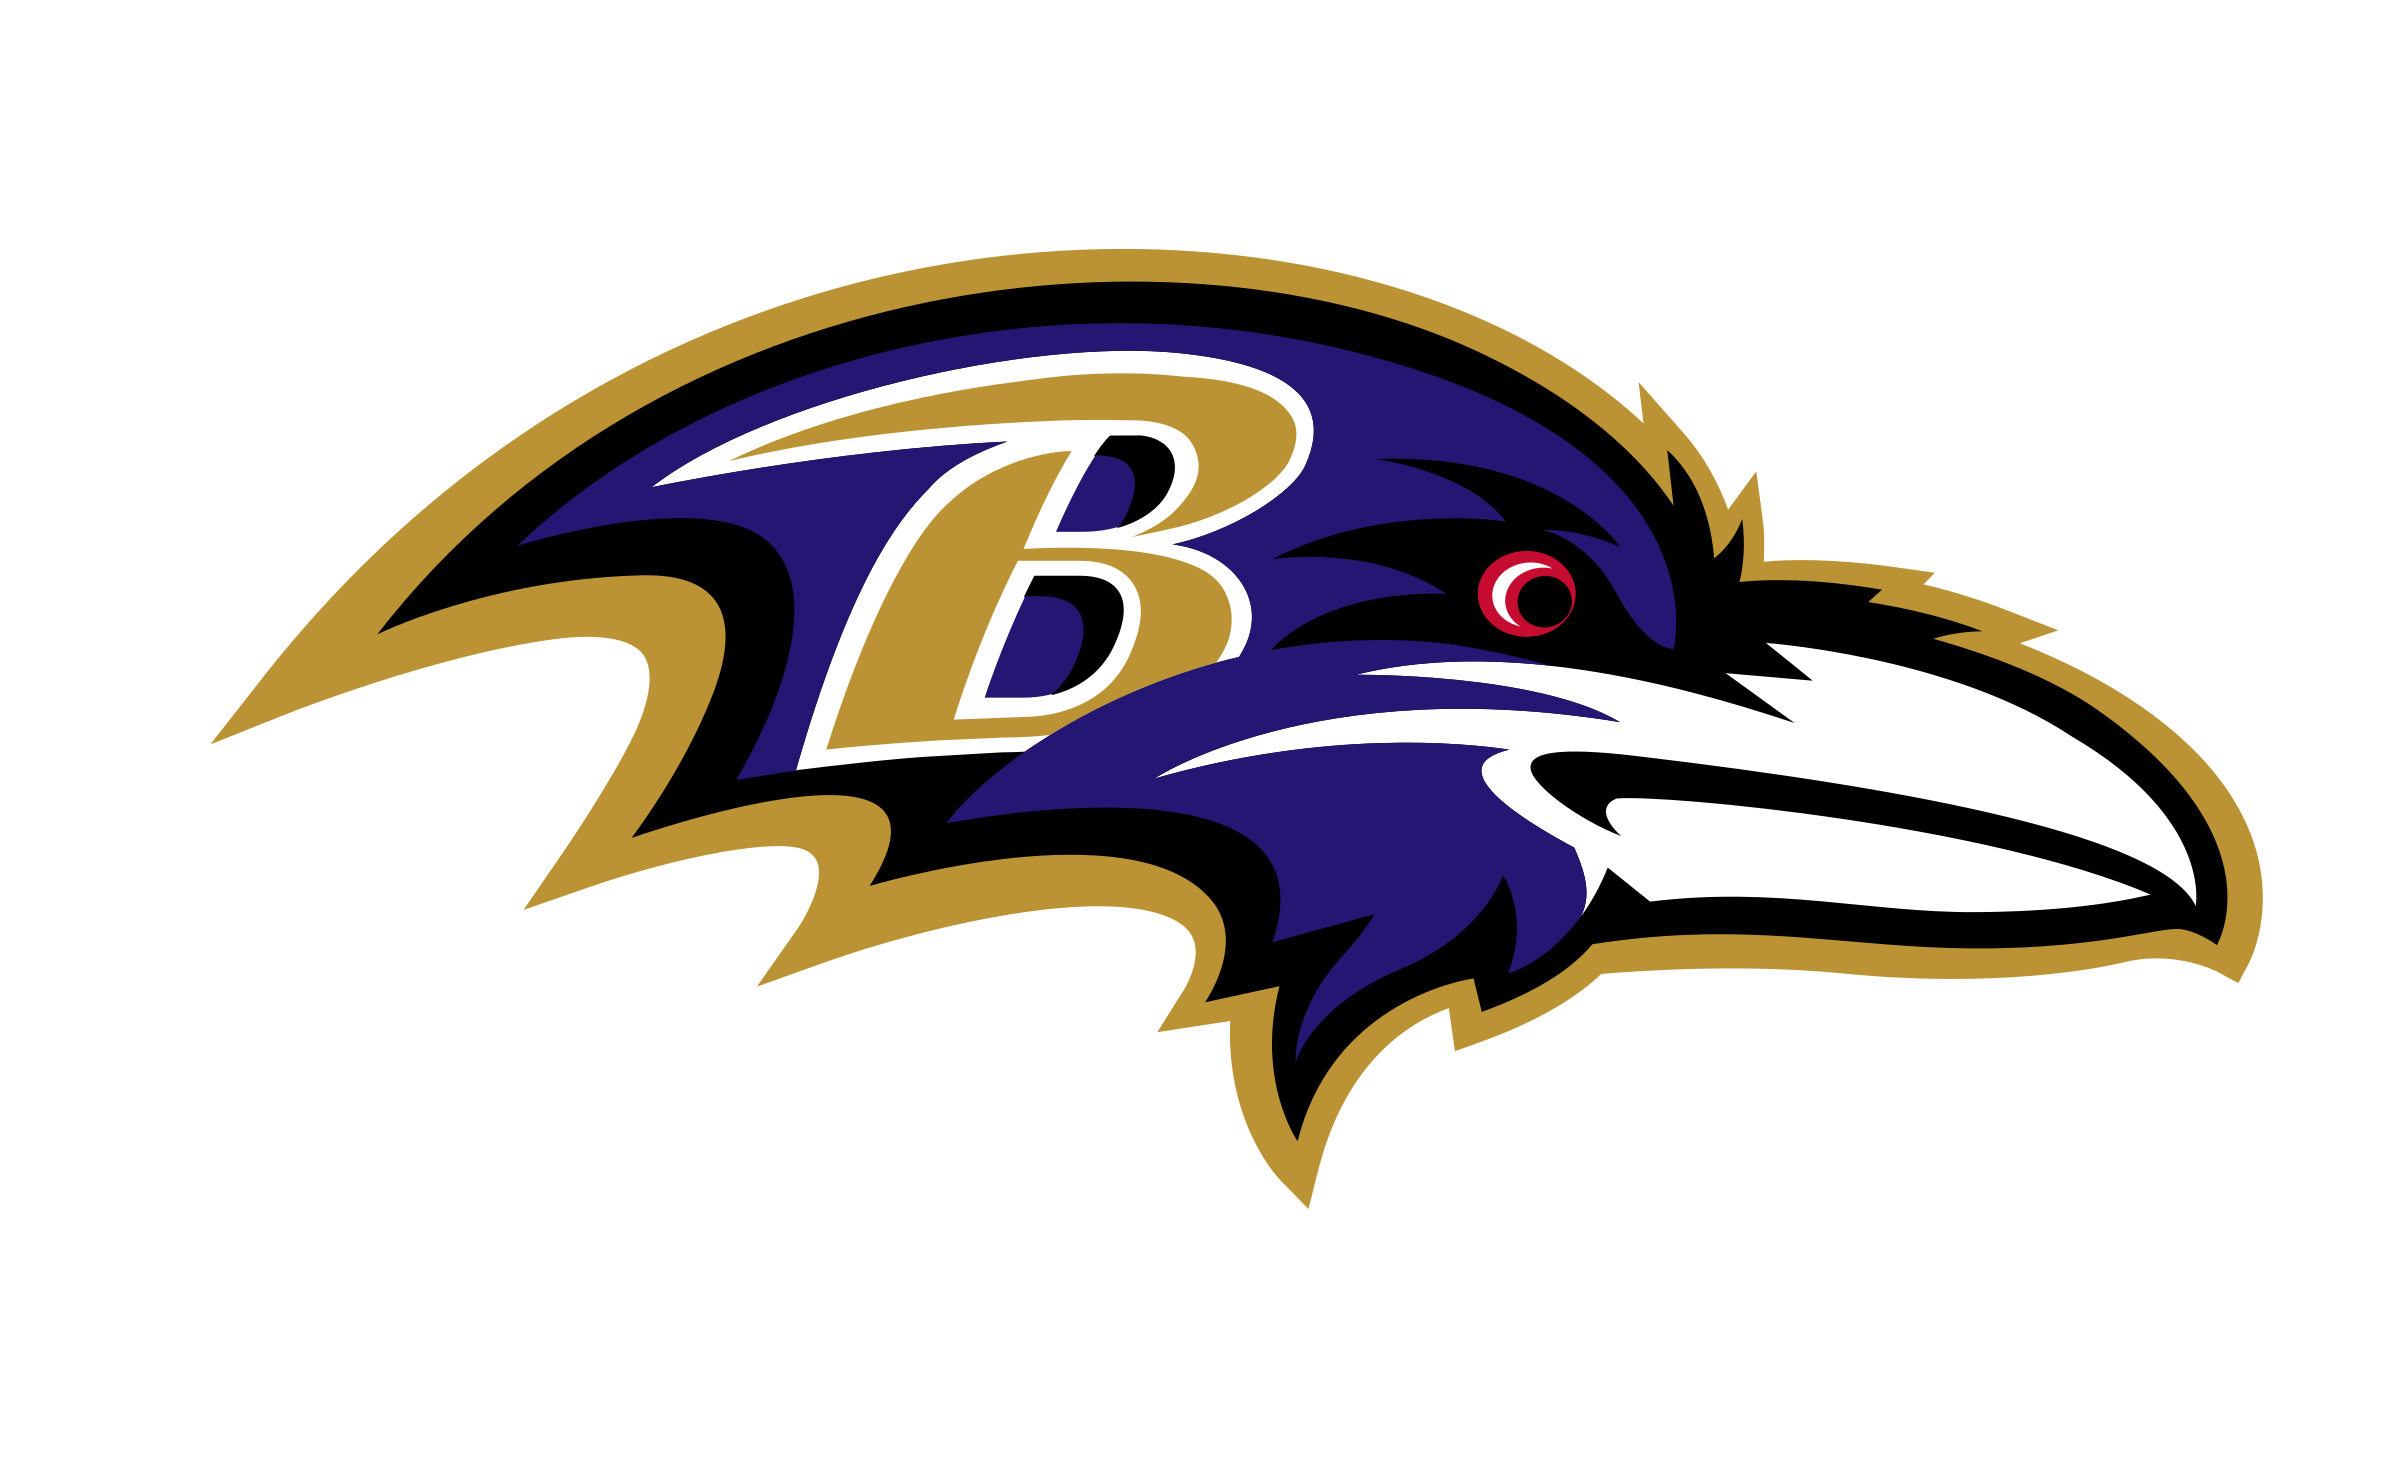 Baltimore Ravens Logo PNG Transparent & SVG Vector.